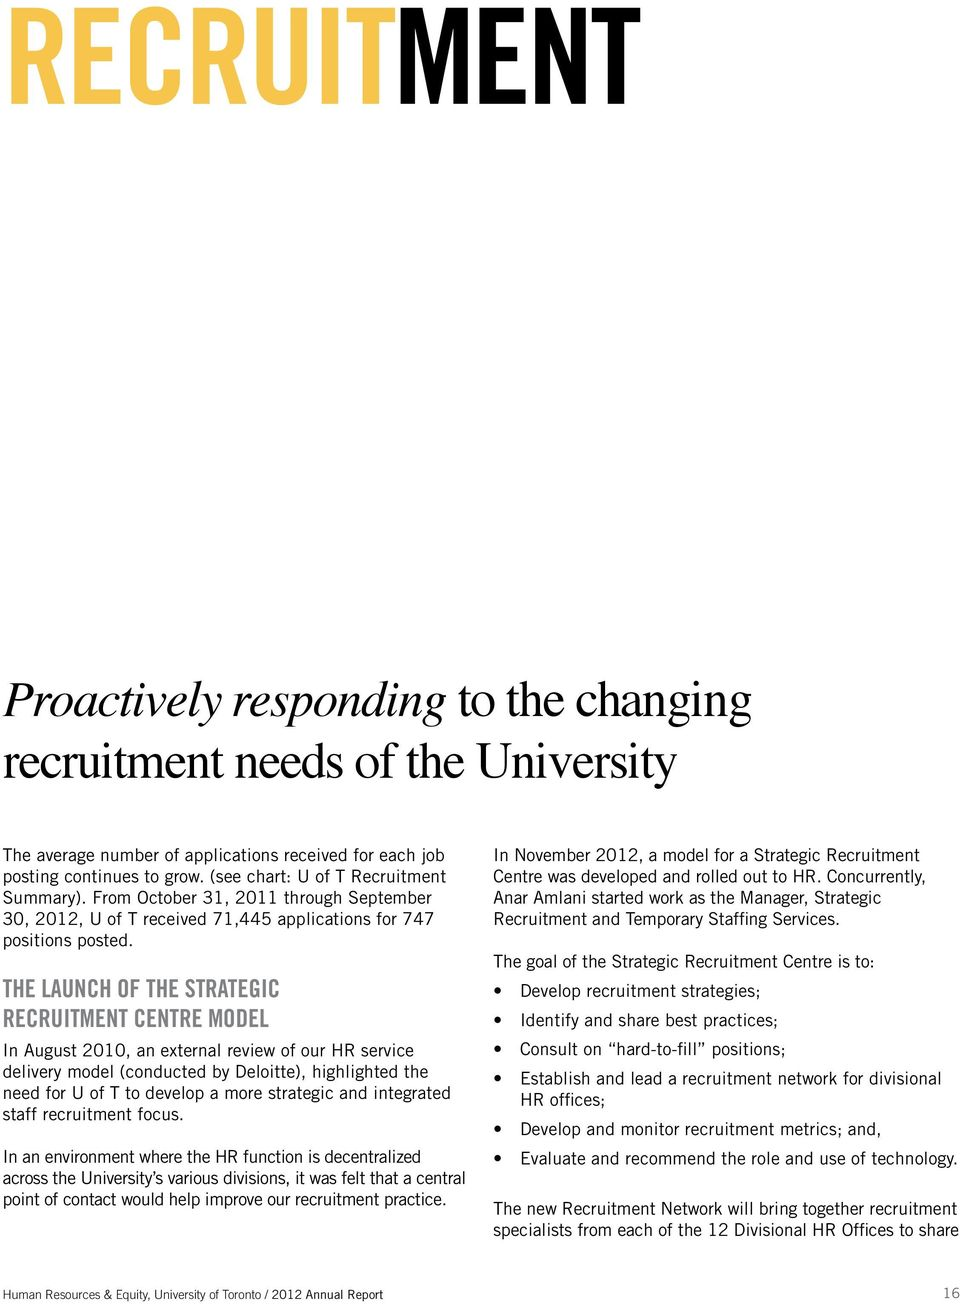 THE LAUNCH OF THE STRATEGIC RECRUITMENT CENTRE MODEL In August 2010, an external review of our HR service delivery model (conducted by Deloitte), highlighted the need for U of T to develop a more